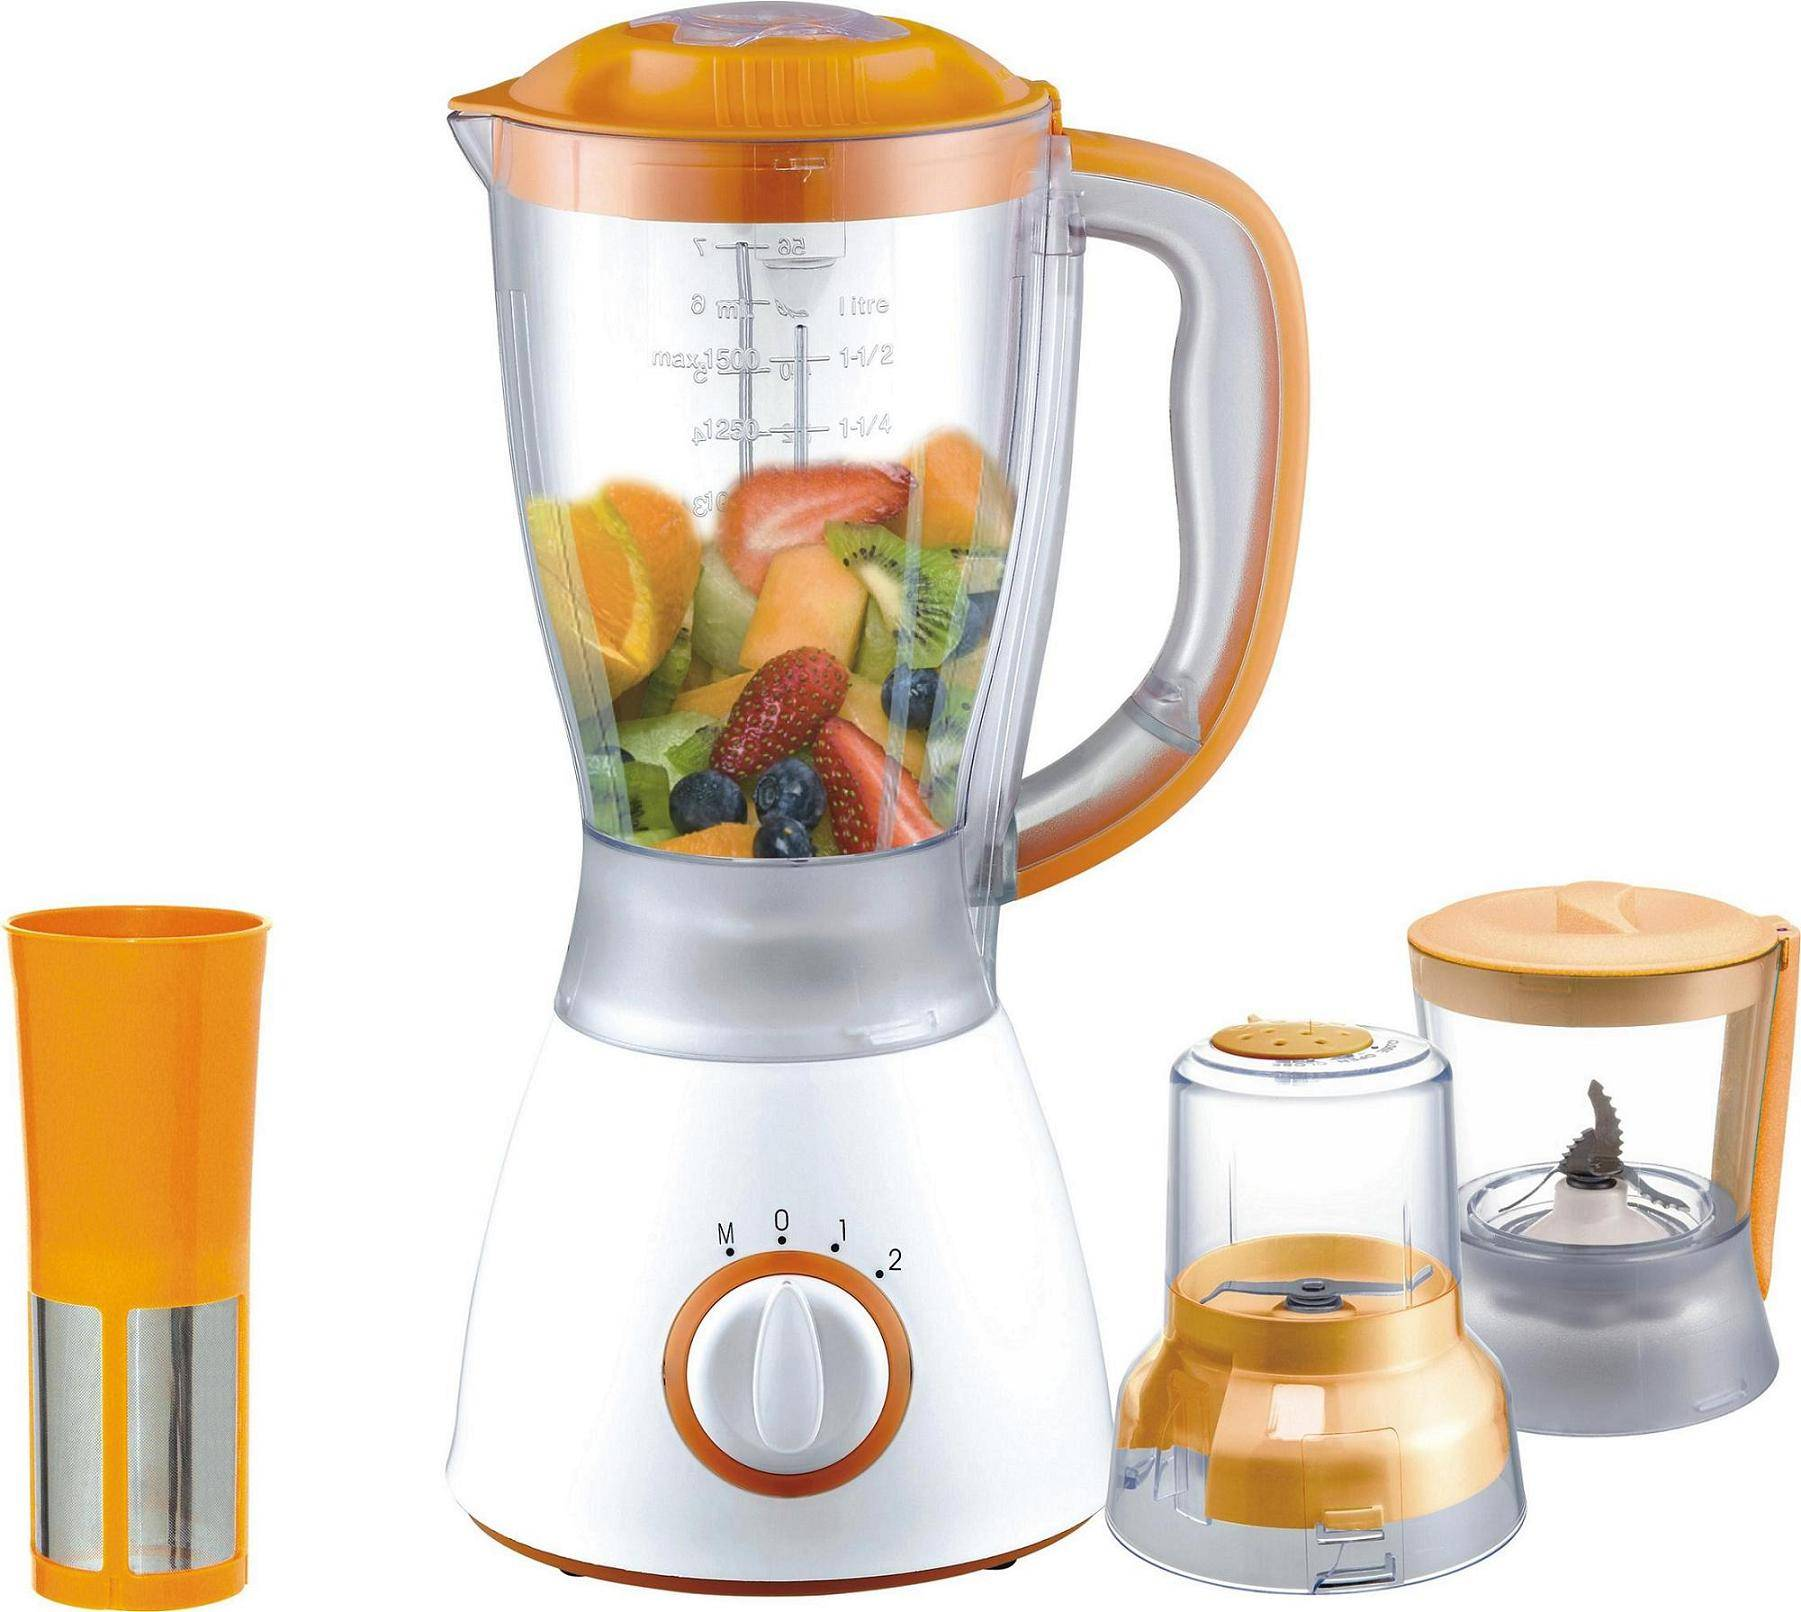 Heavy duty blender hm767 harumi blender bpa free 600w for What brand of blender is used on the chew